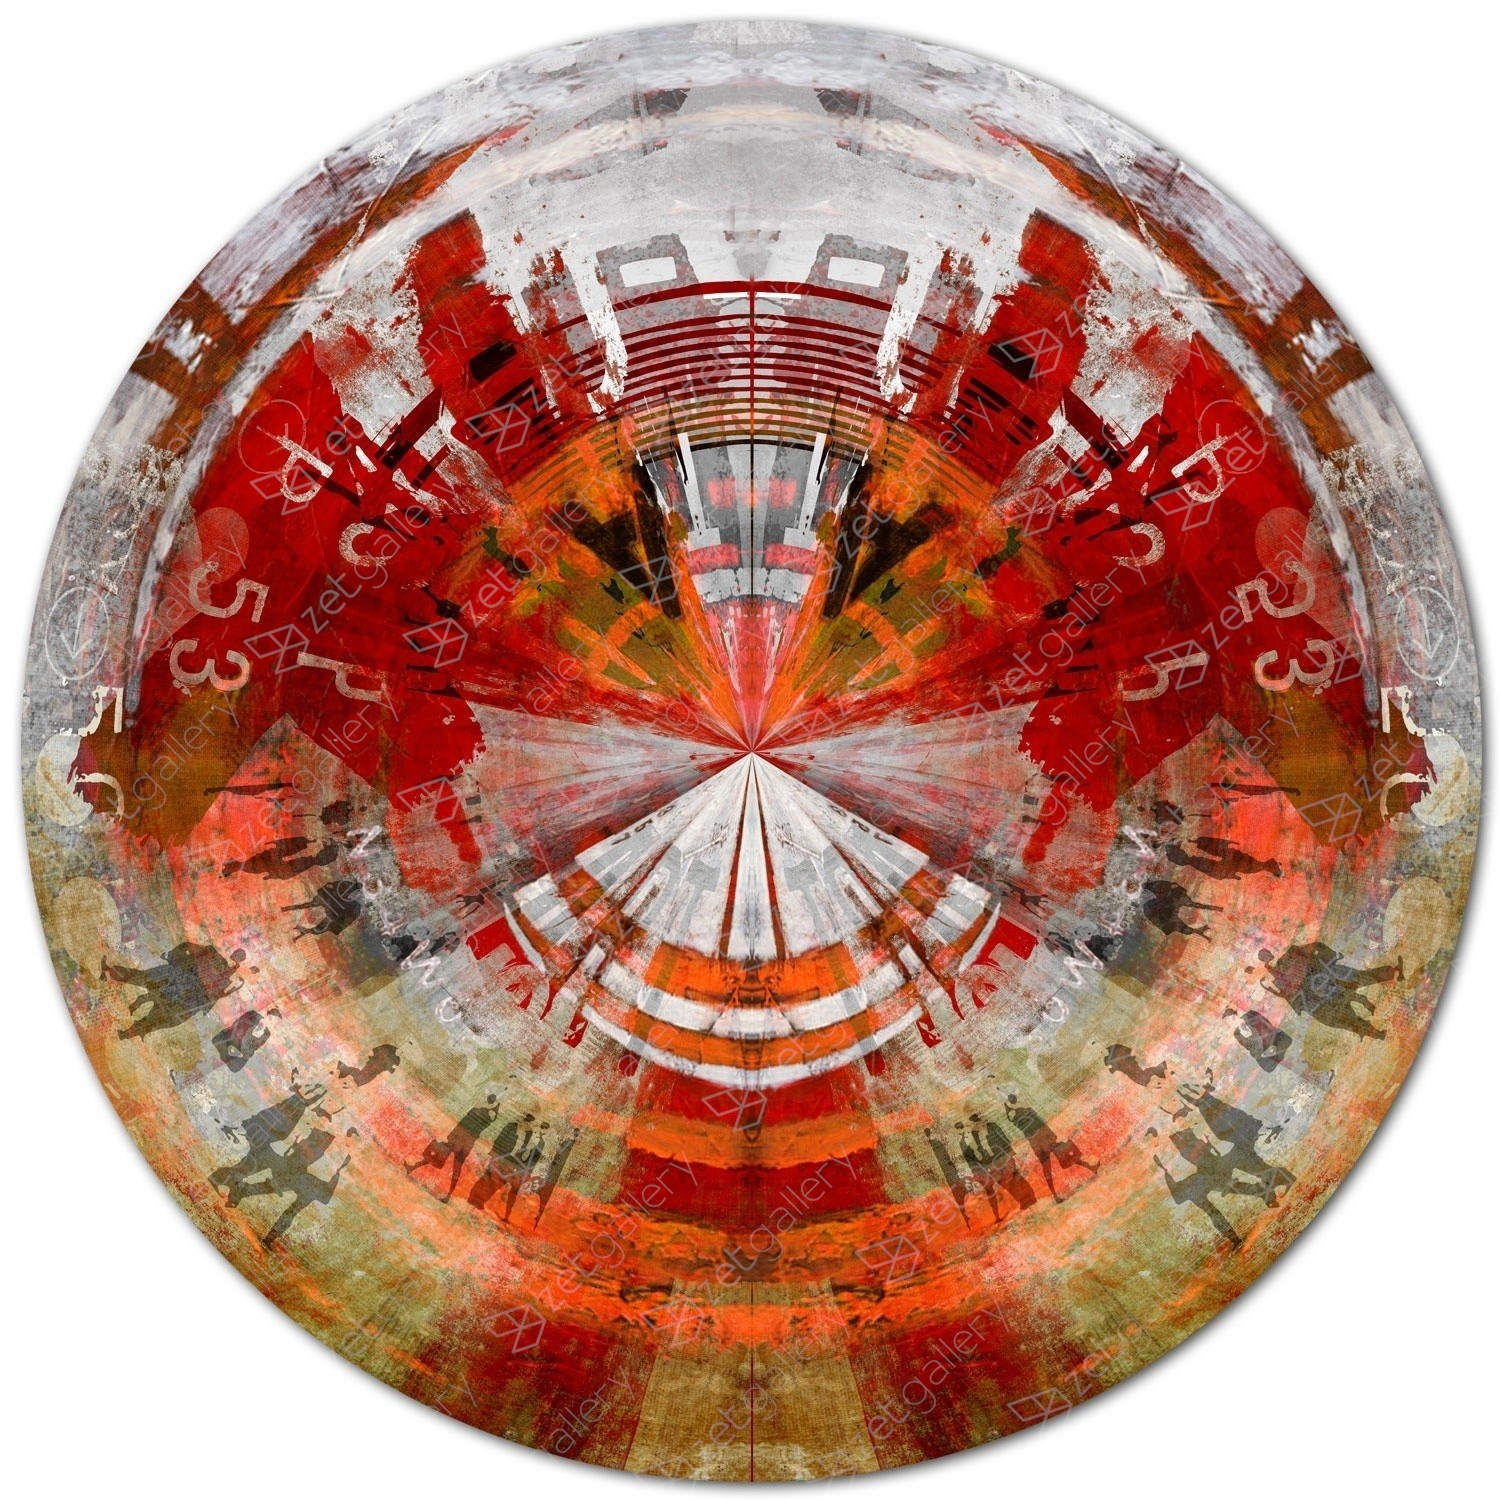 CIRCULAR 60, original Abstract Digital Photography by Sven Pfrommer